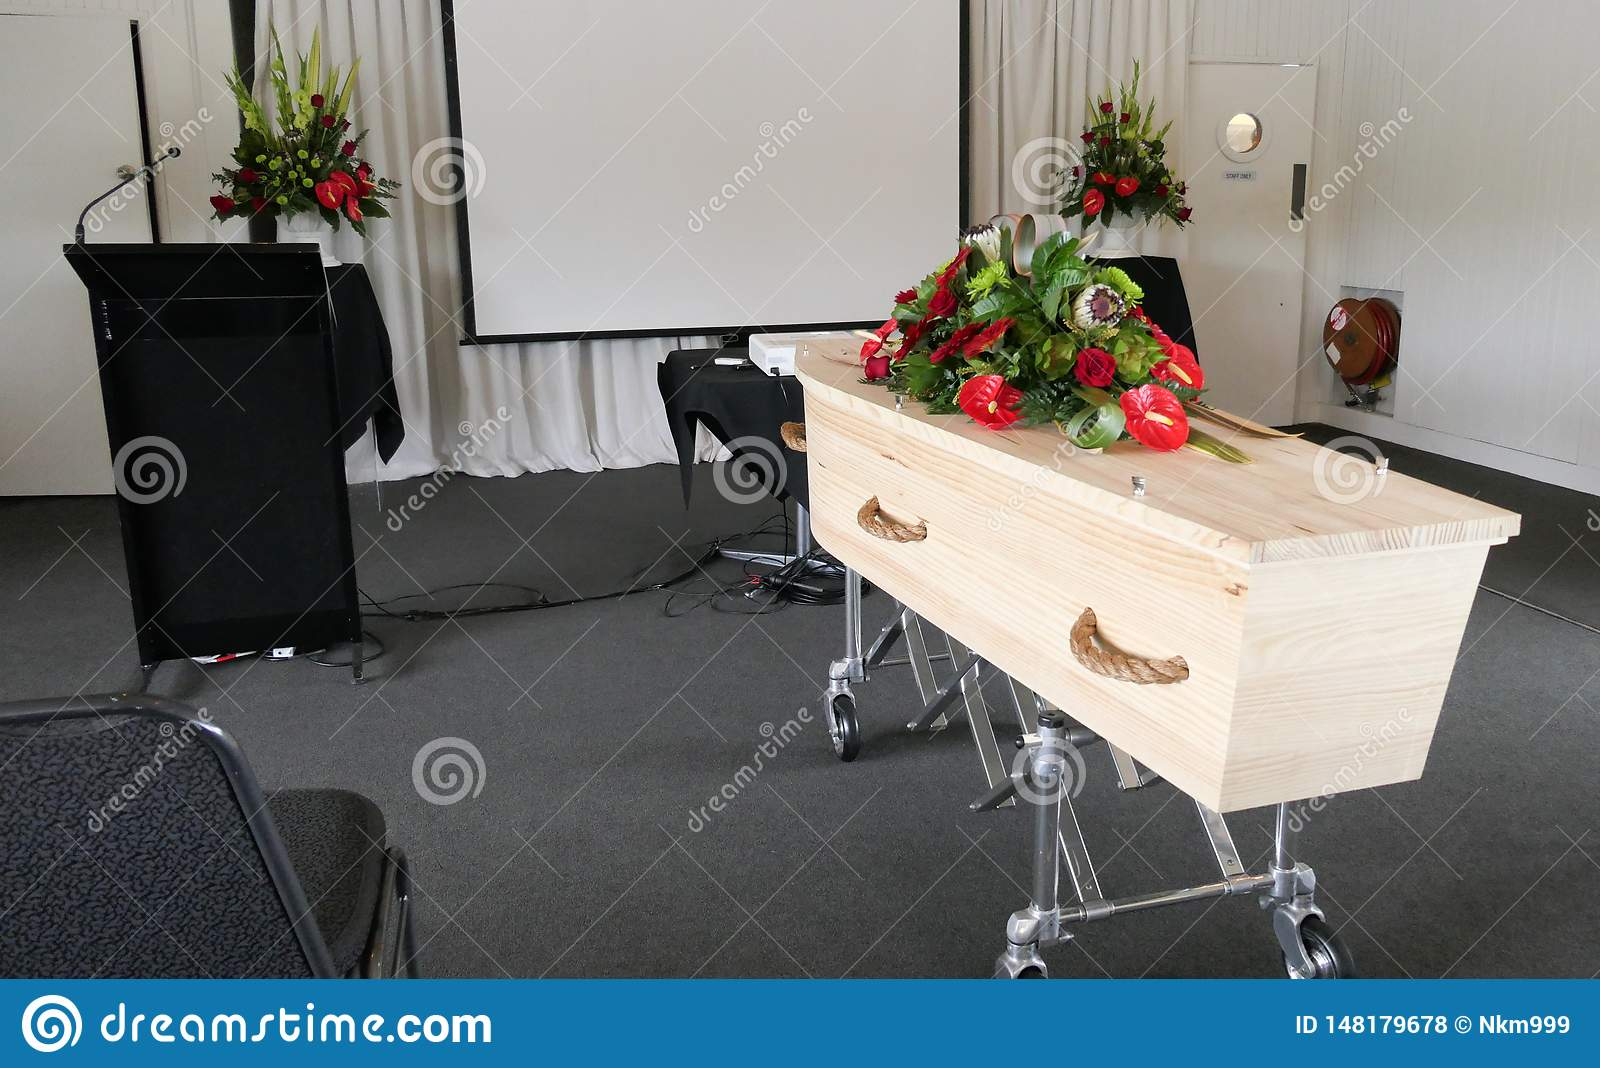 Funeral casket in a hearse or chapel or burial at cemetery